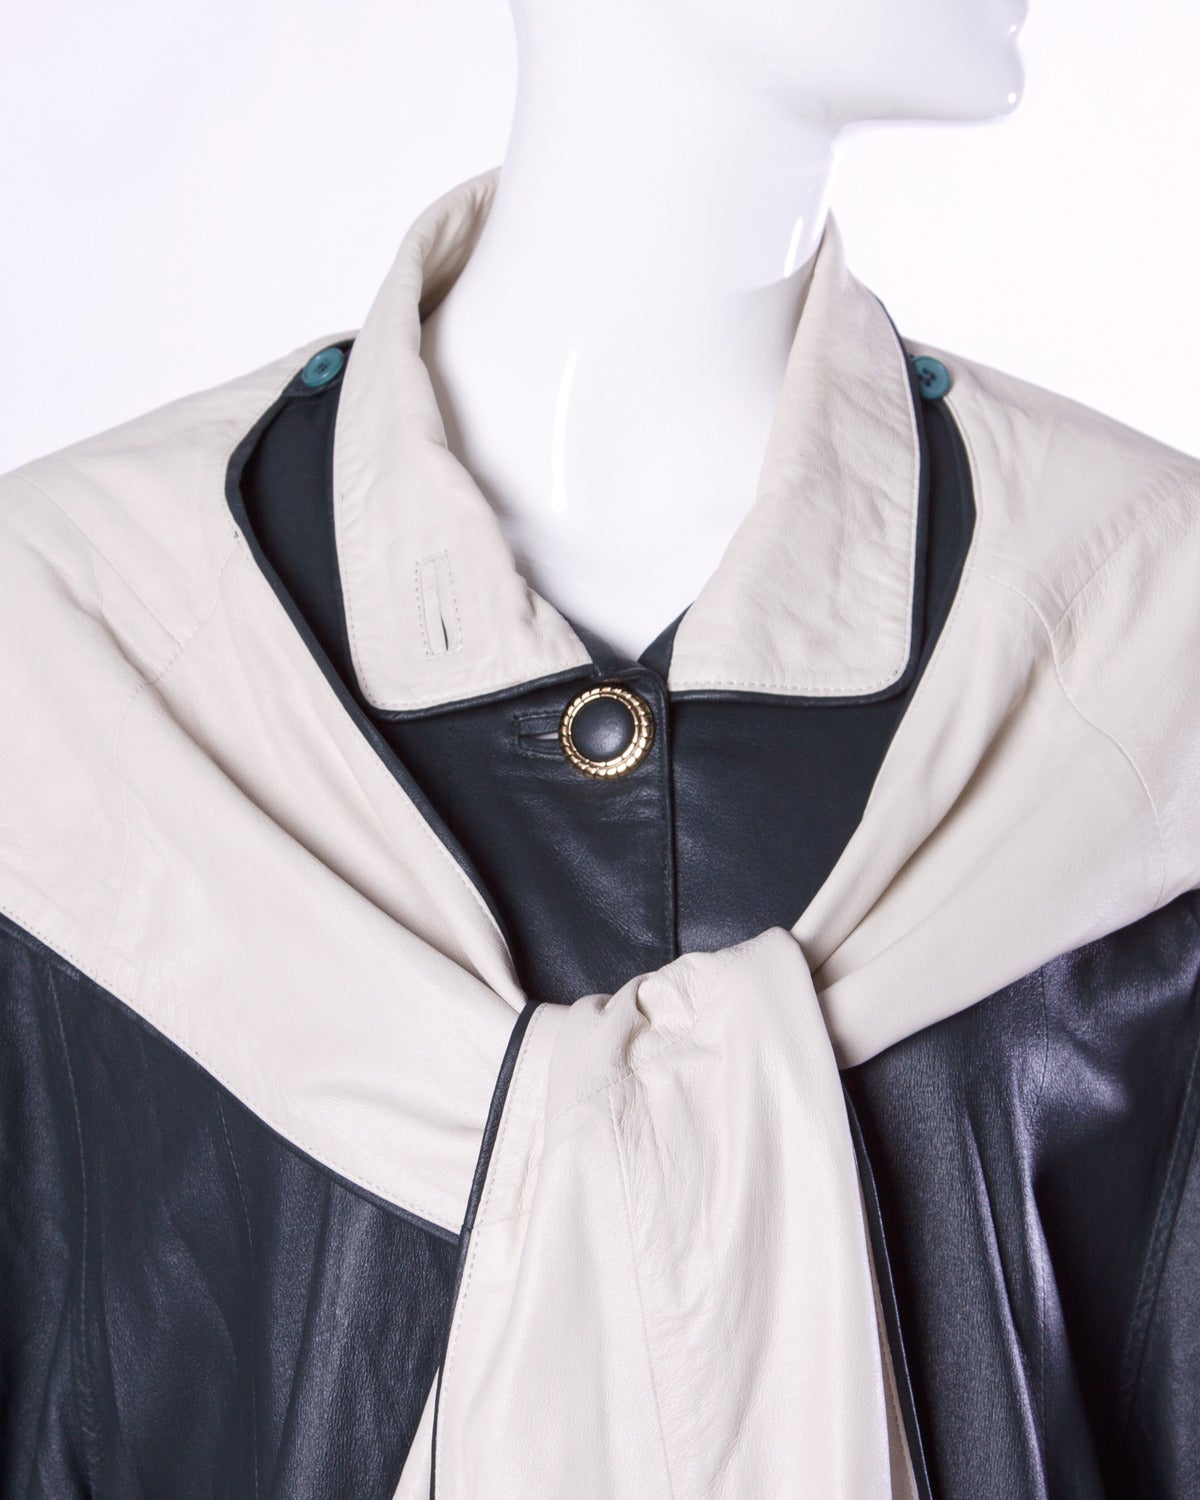 Vintage leather coat with a detachable hood that buttons on and off by Escada.